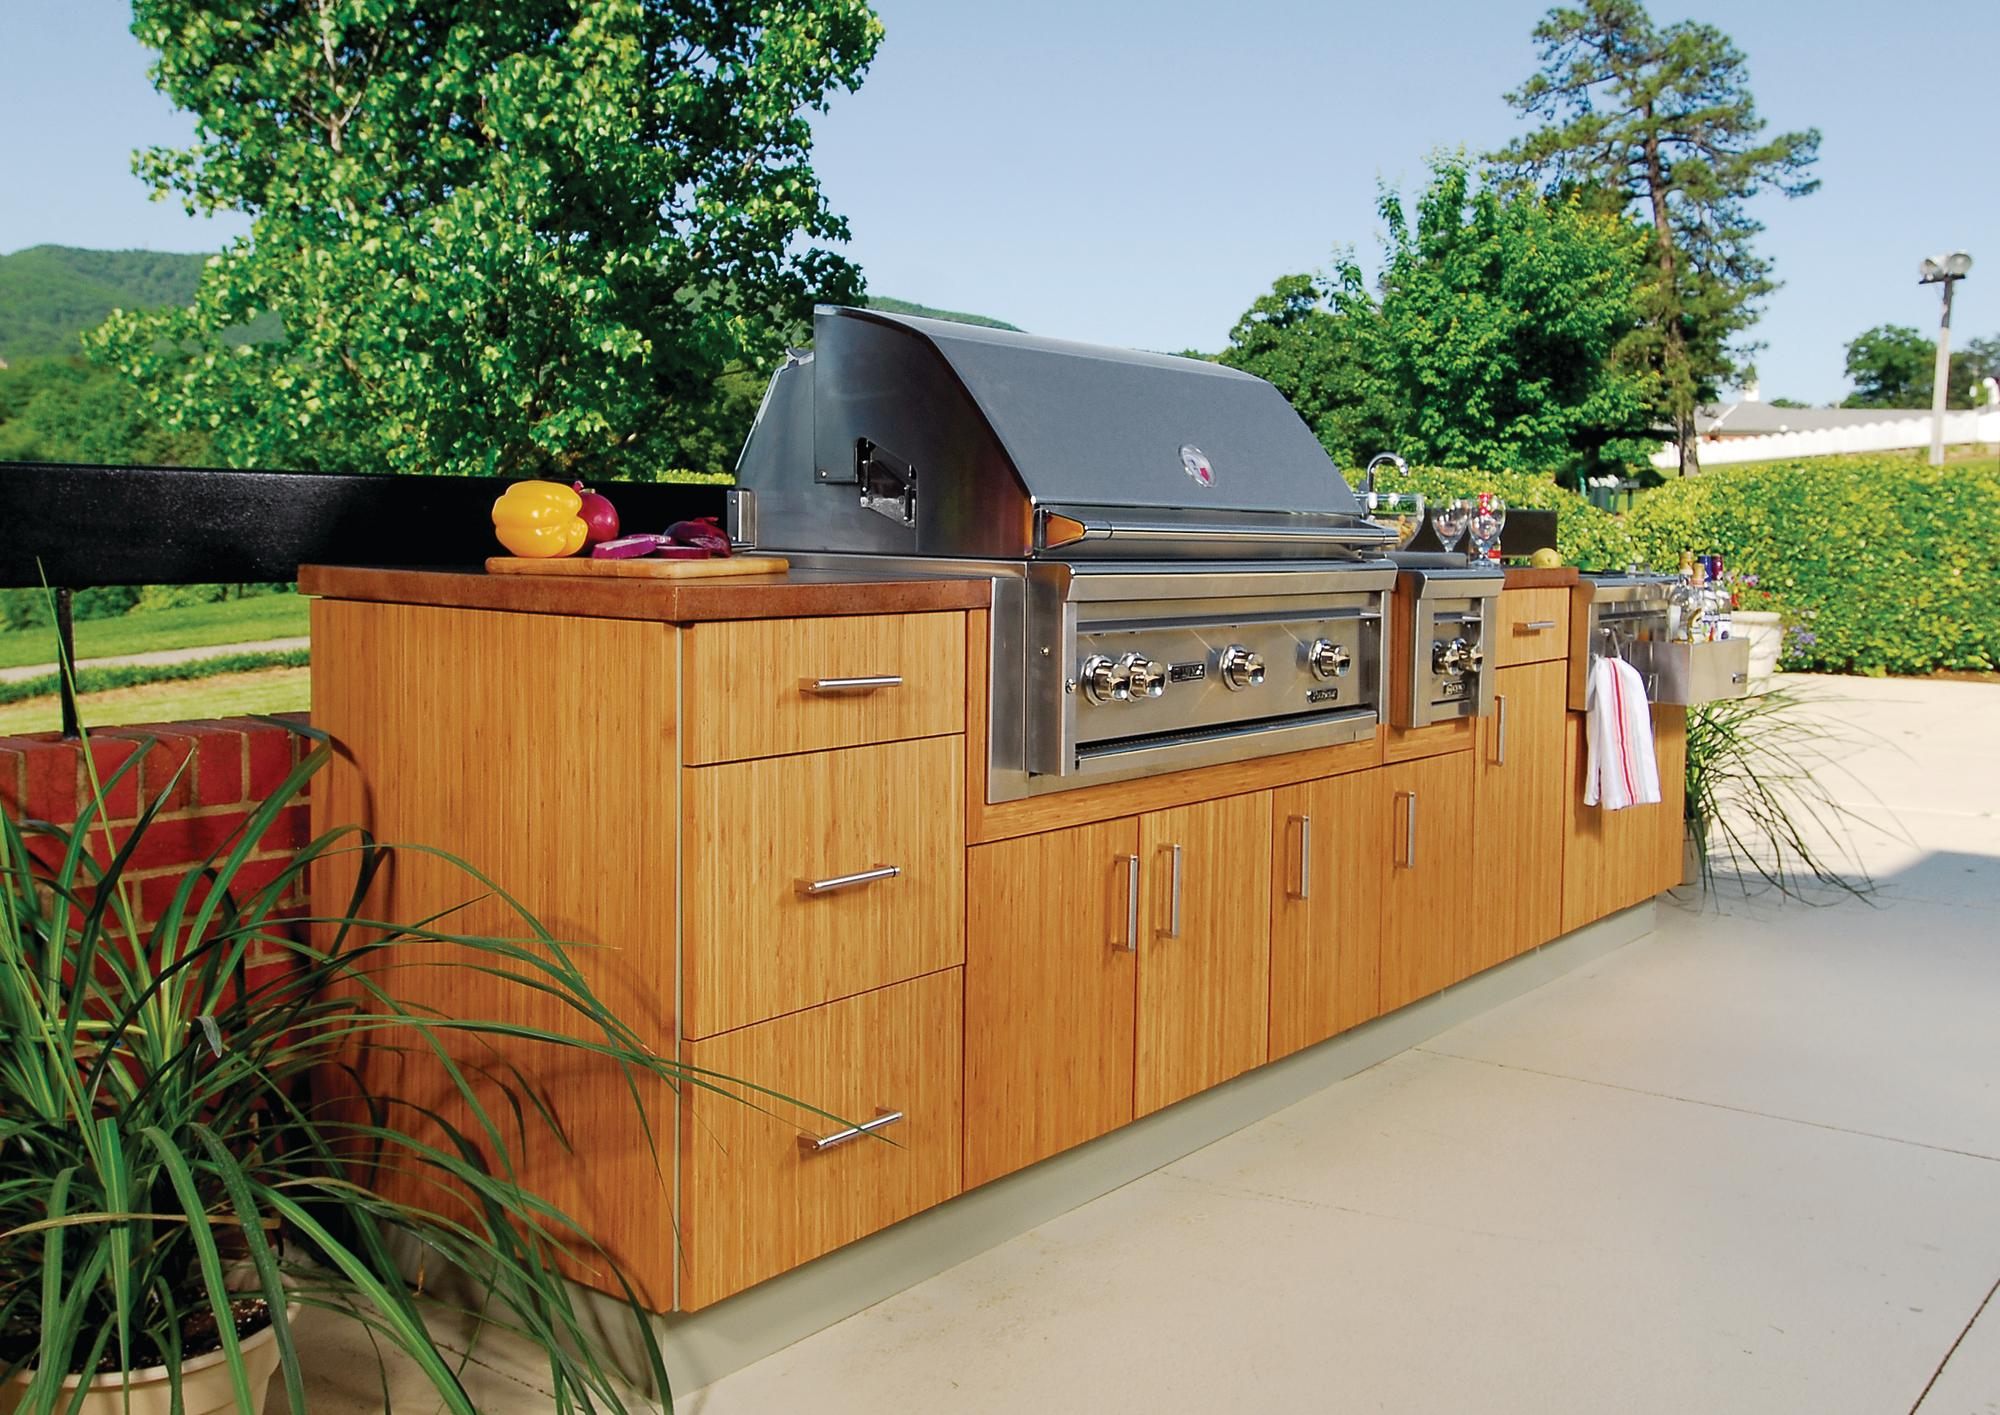 Atlantis Outdoor Kitchens Bamboo Doors | Remodeling | Outdoor Kitchens,  Outdoor Rooms, Cabinets, Atlantis Outdoor Kitchens